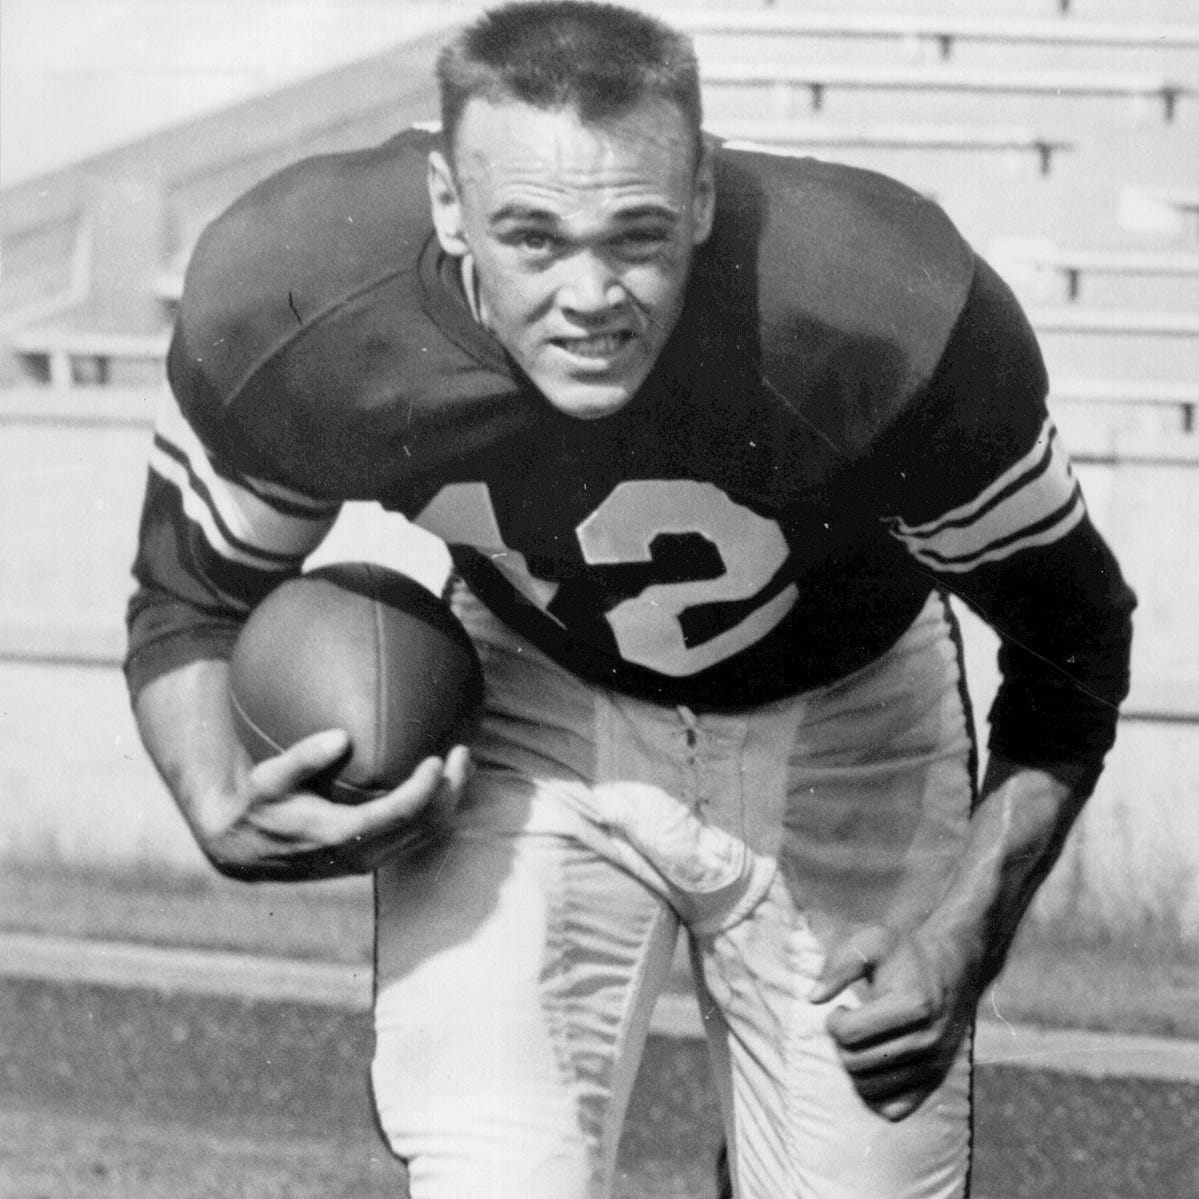 Gene Keady, college football phenom, 1958 NFL draft pick and 4-sport athlete